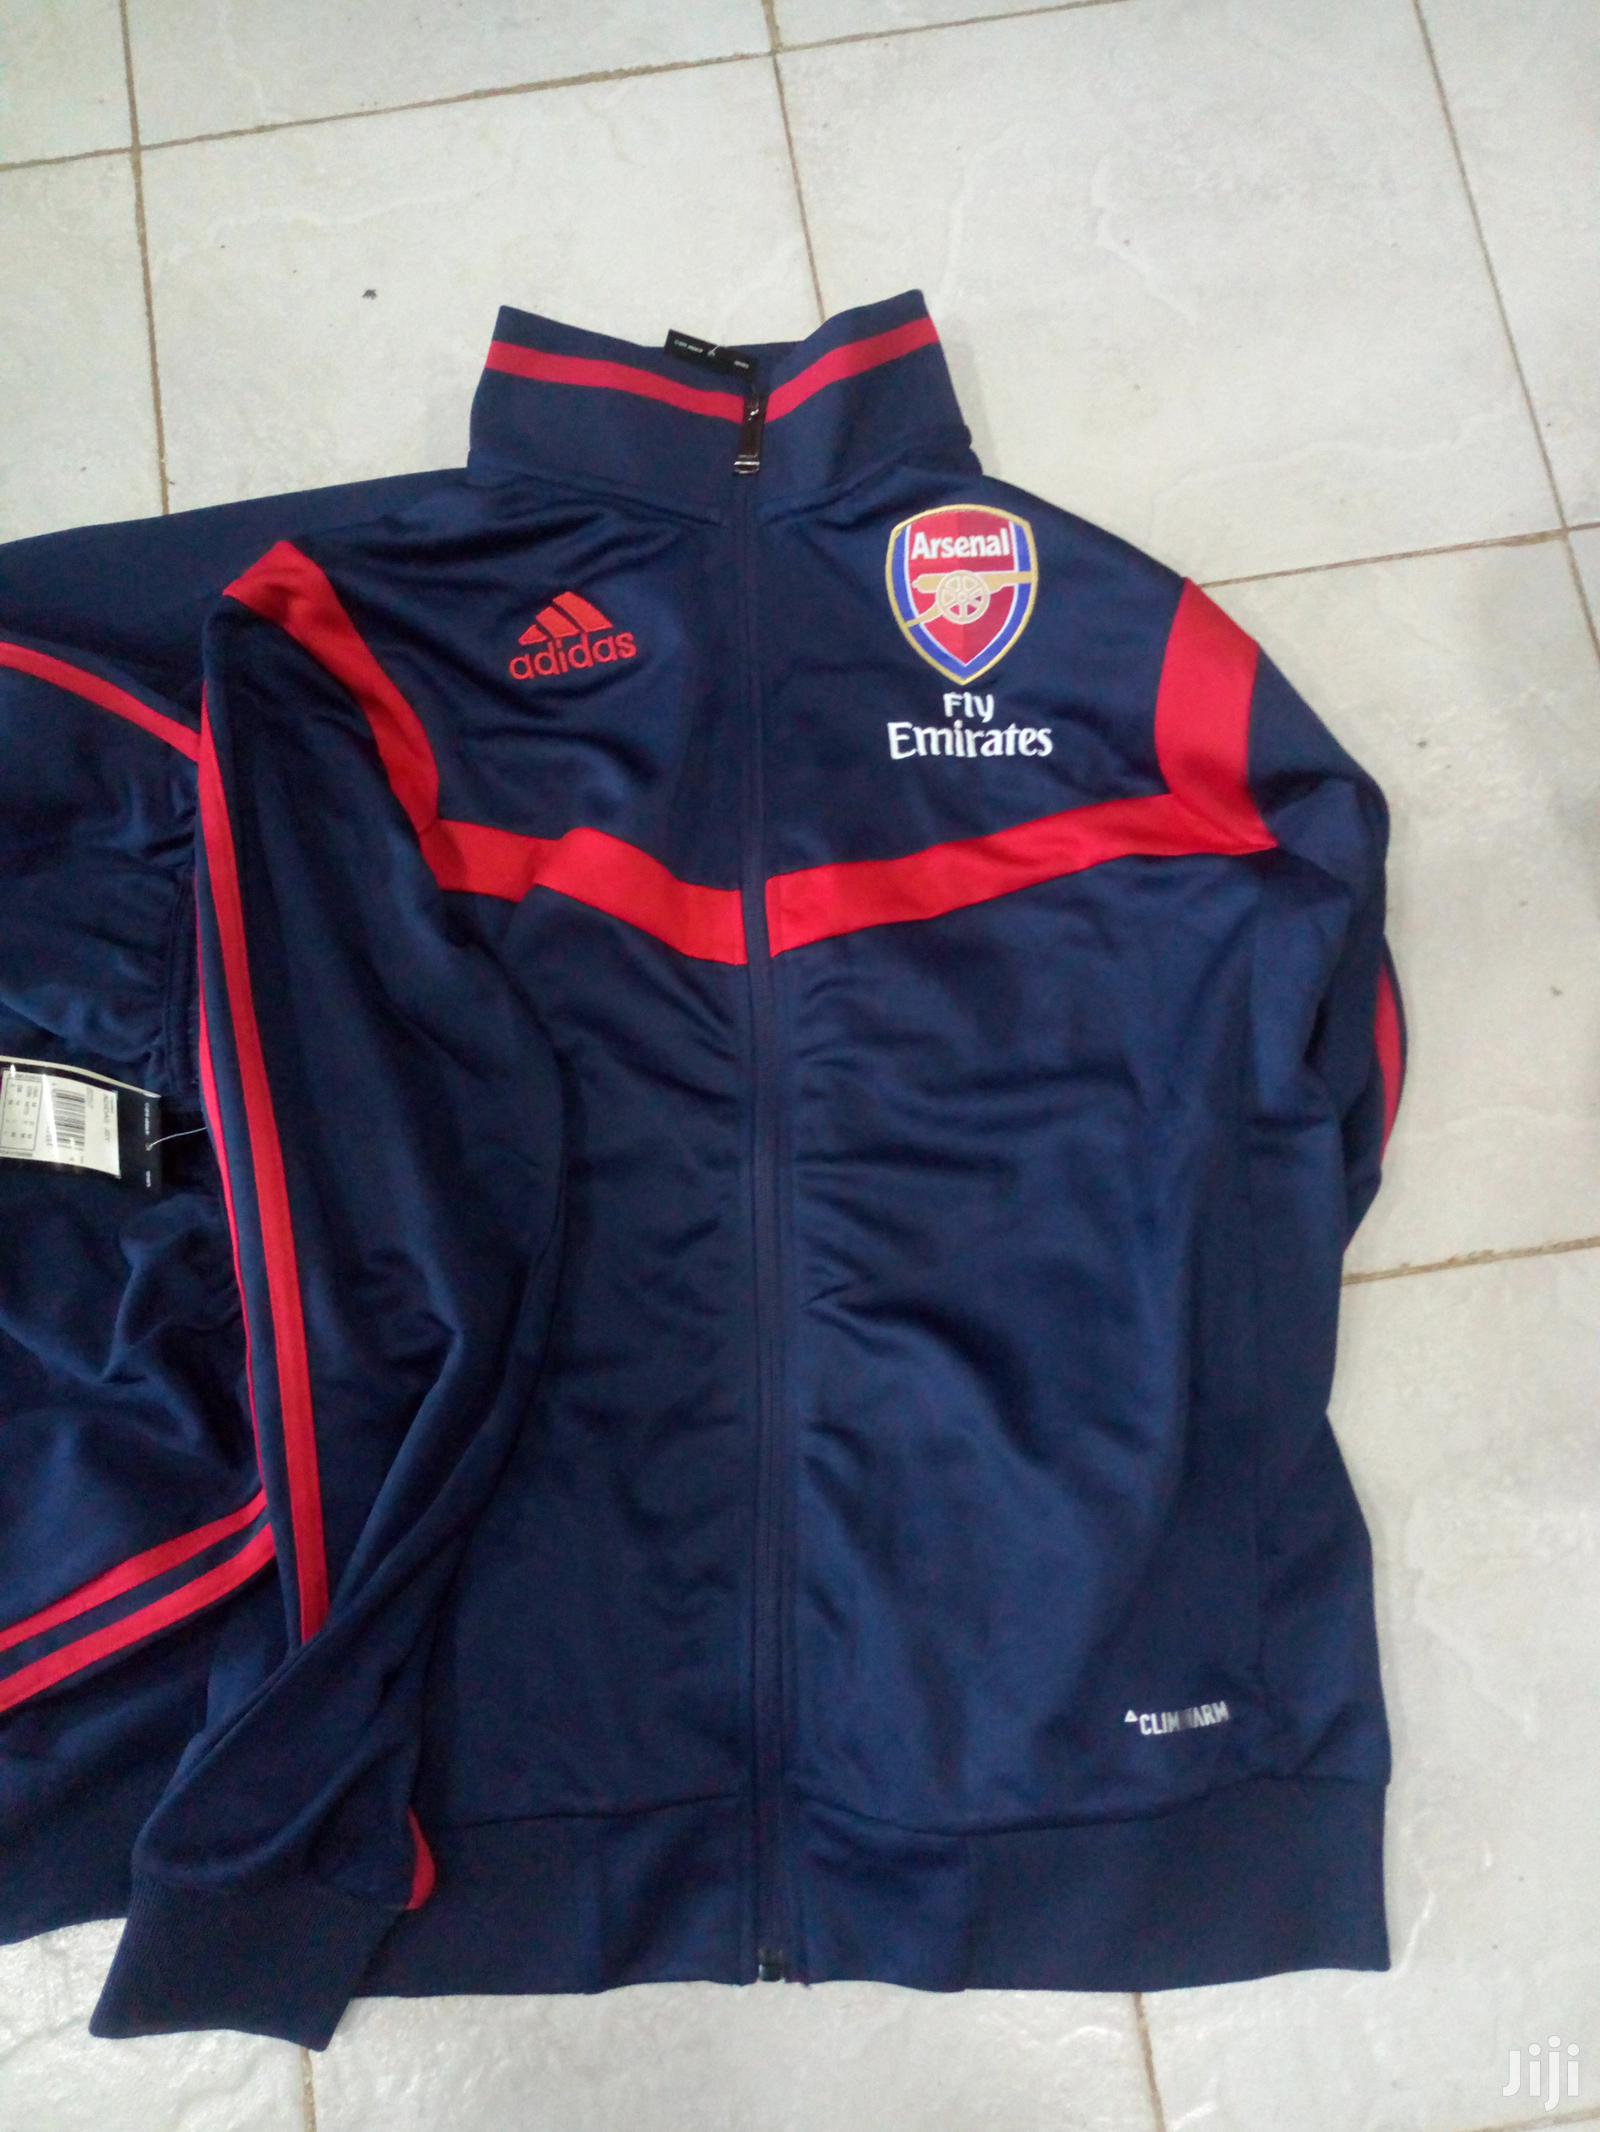 Archive: Arsenal Tracksuits Adidas, Gym Wear